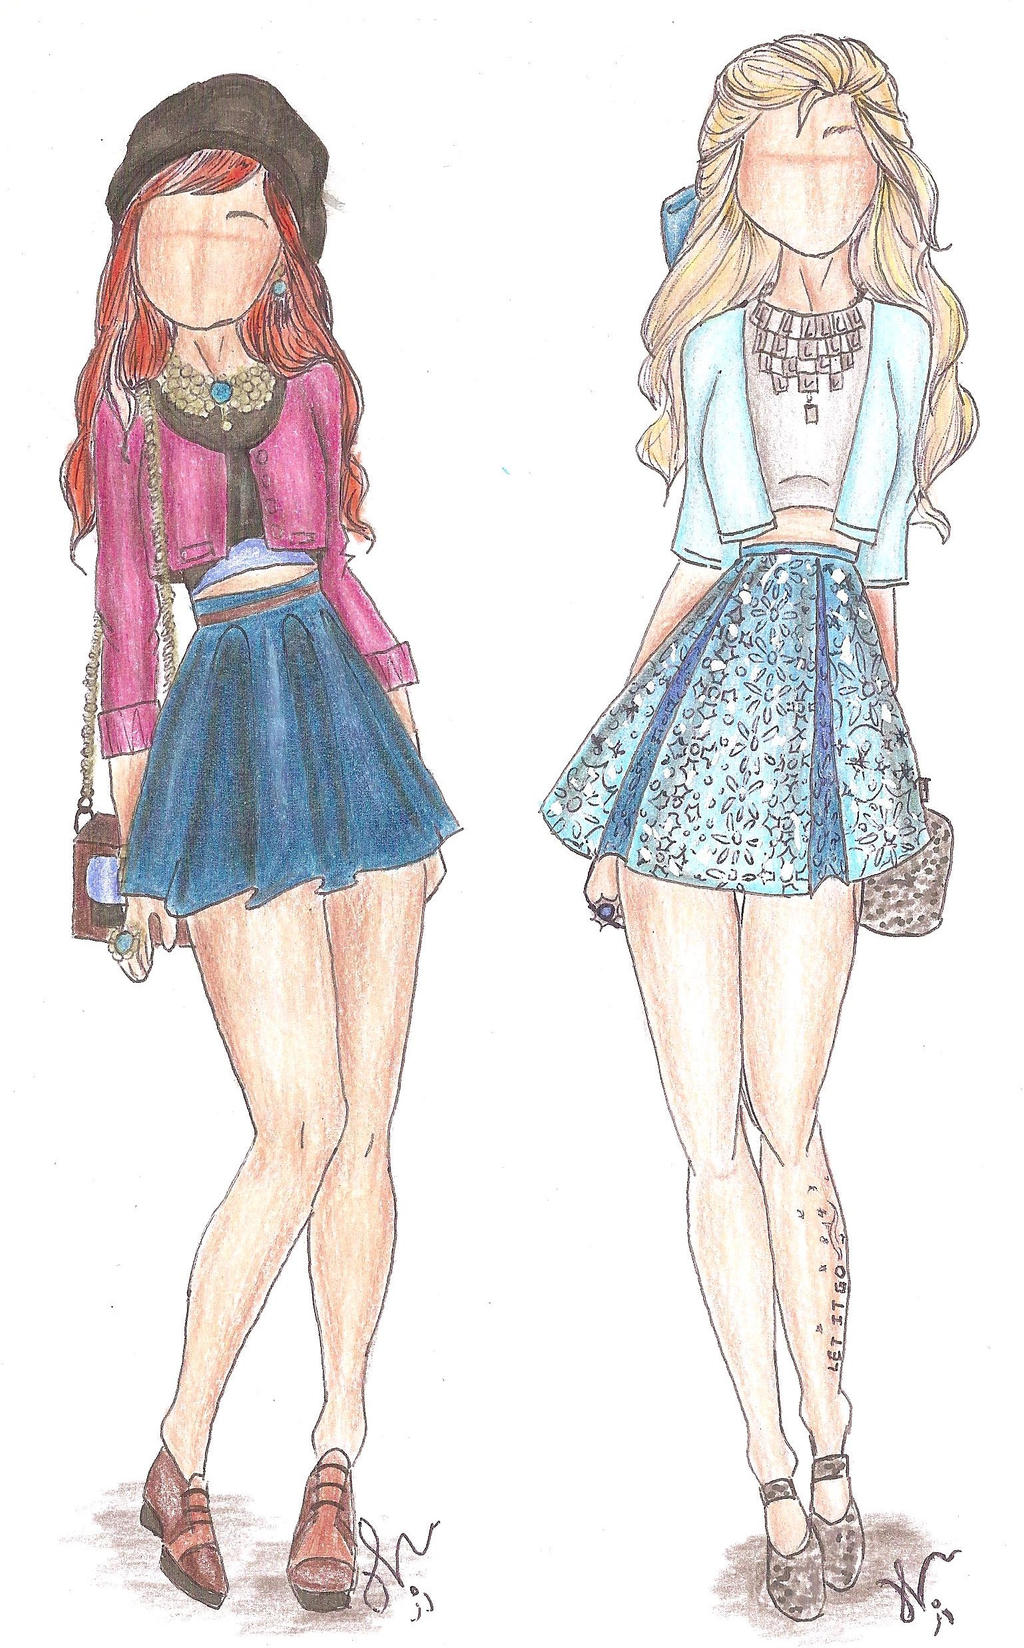 Disney Princess Fashion Anna And Elsa By Vianadrawings On Deviantart